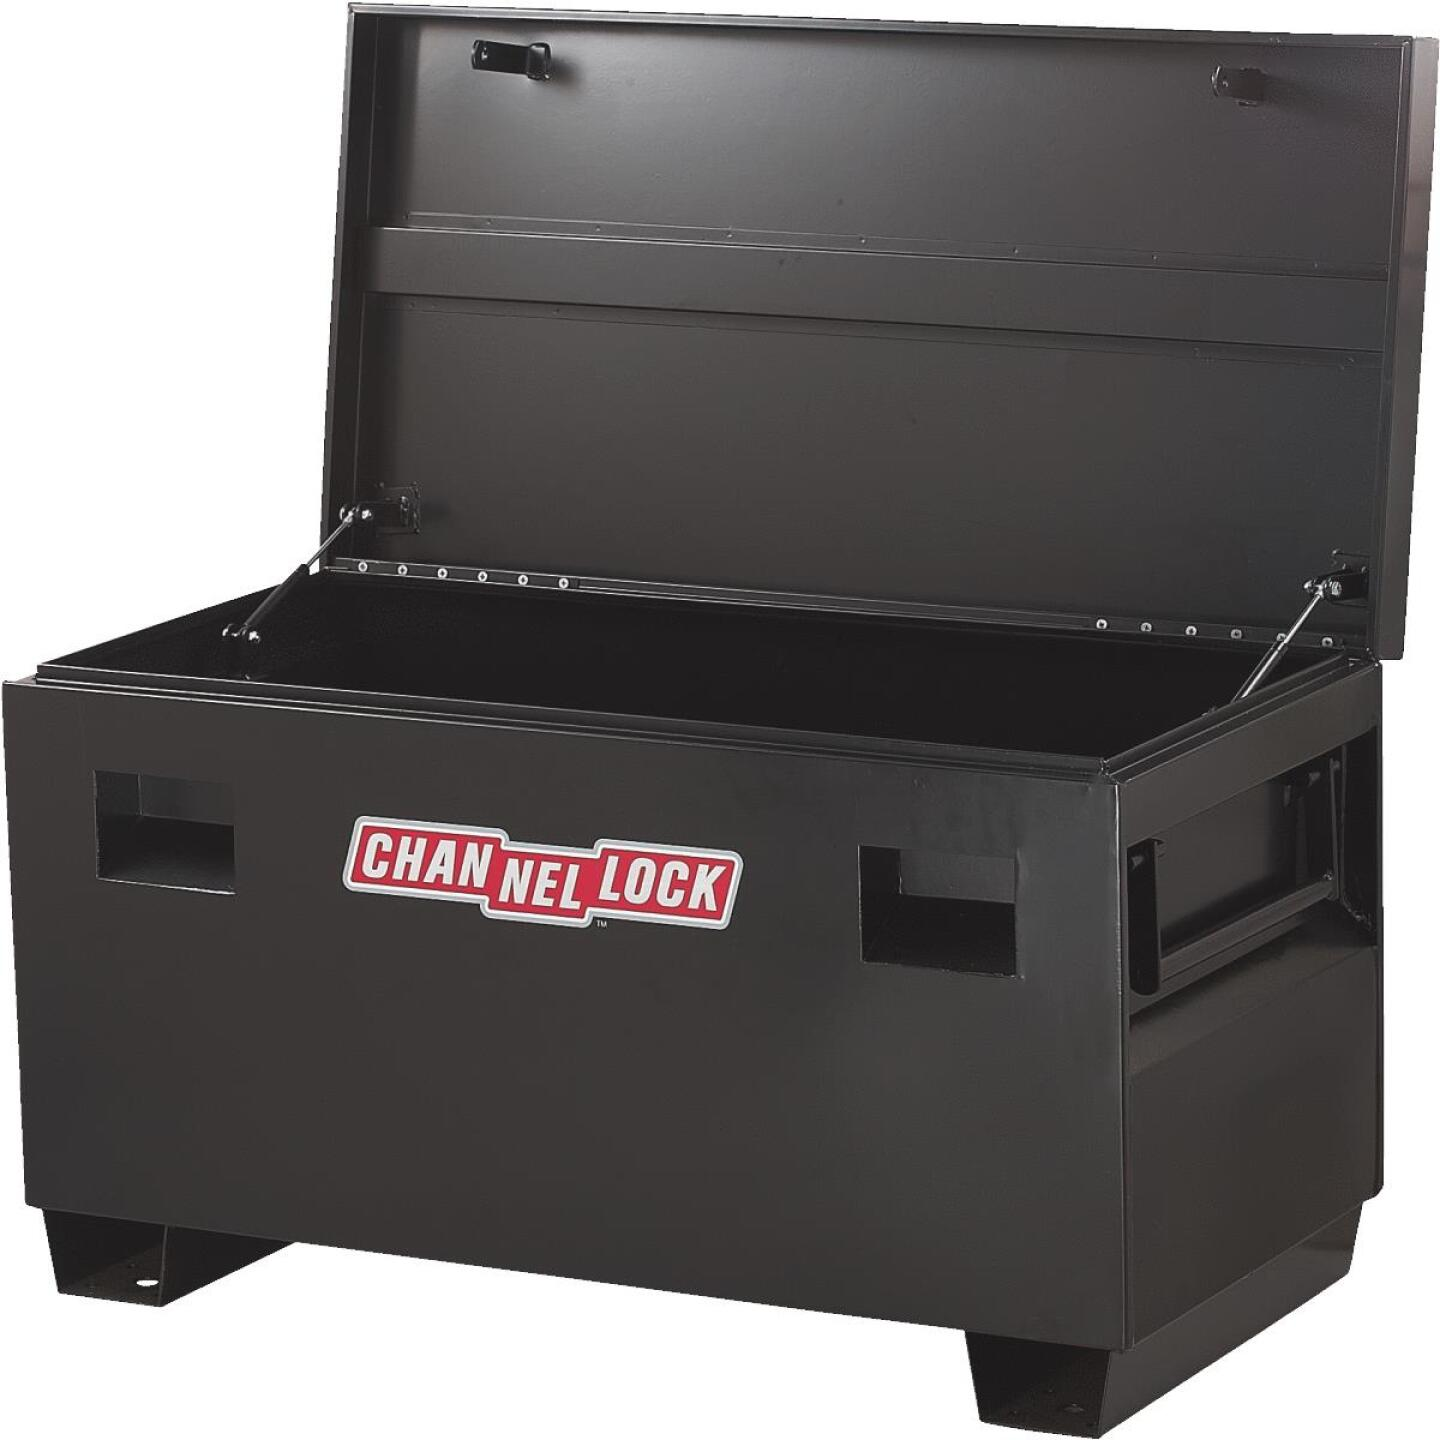 Channellock 48 In. Jobsite Toolbox Image 5